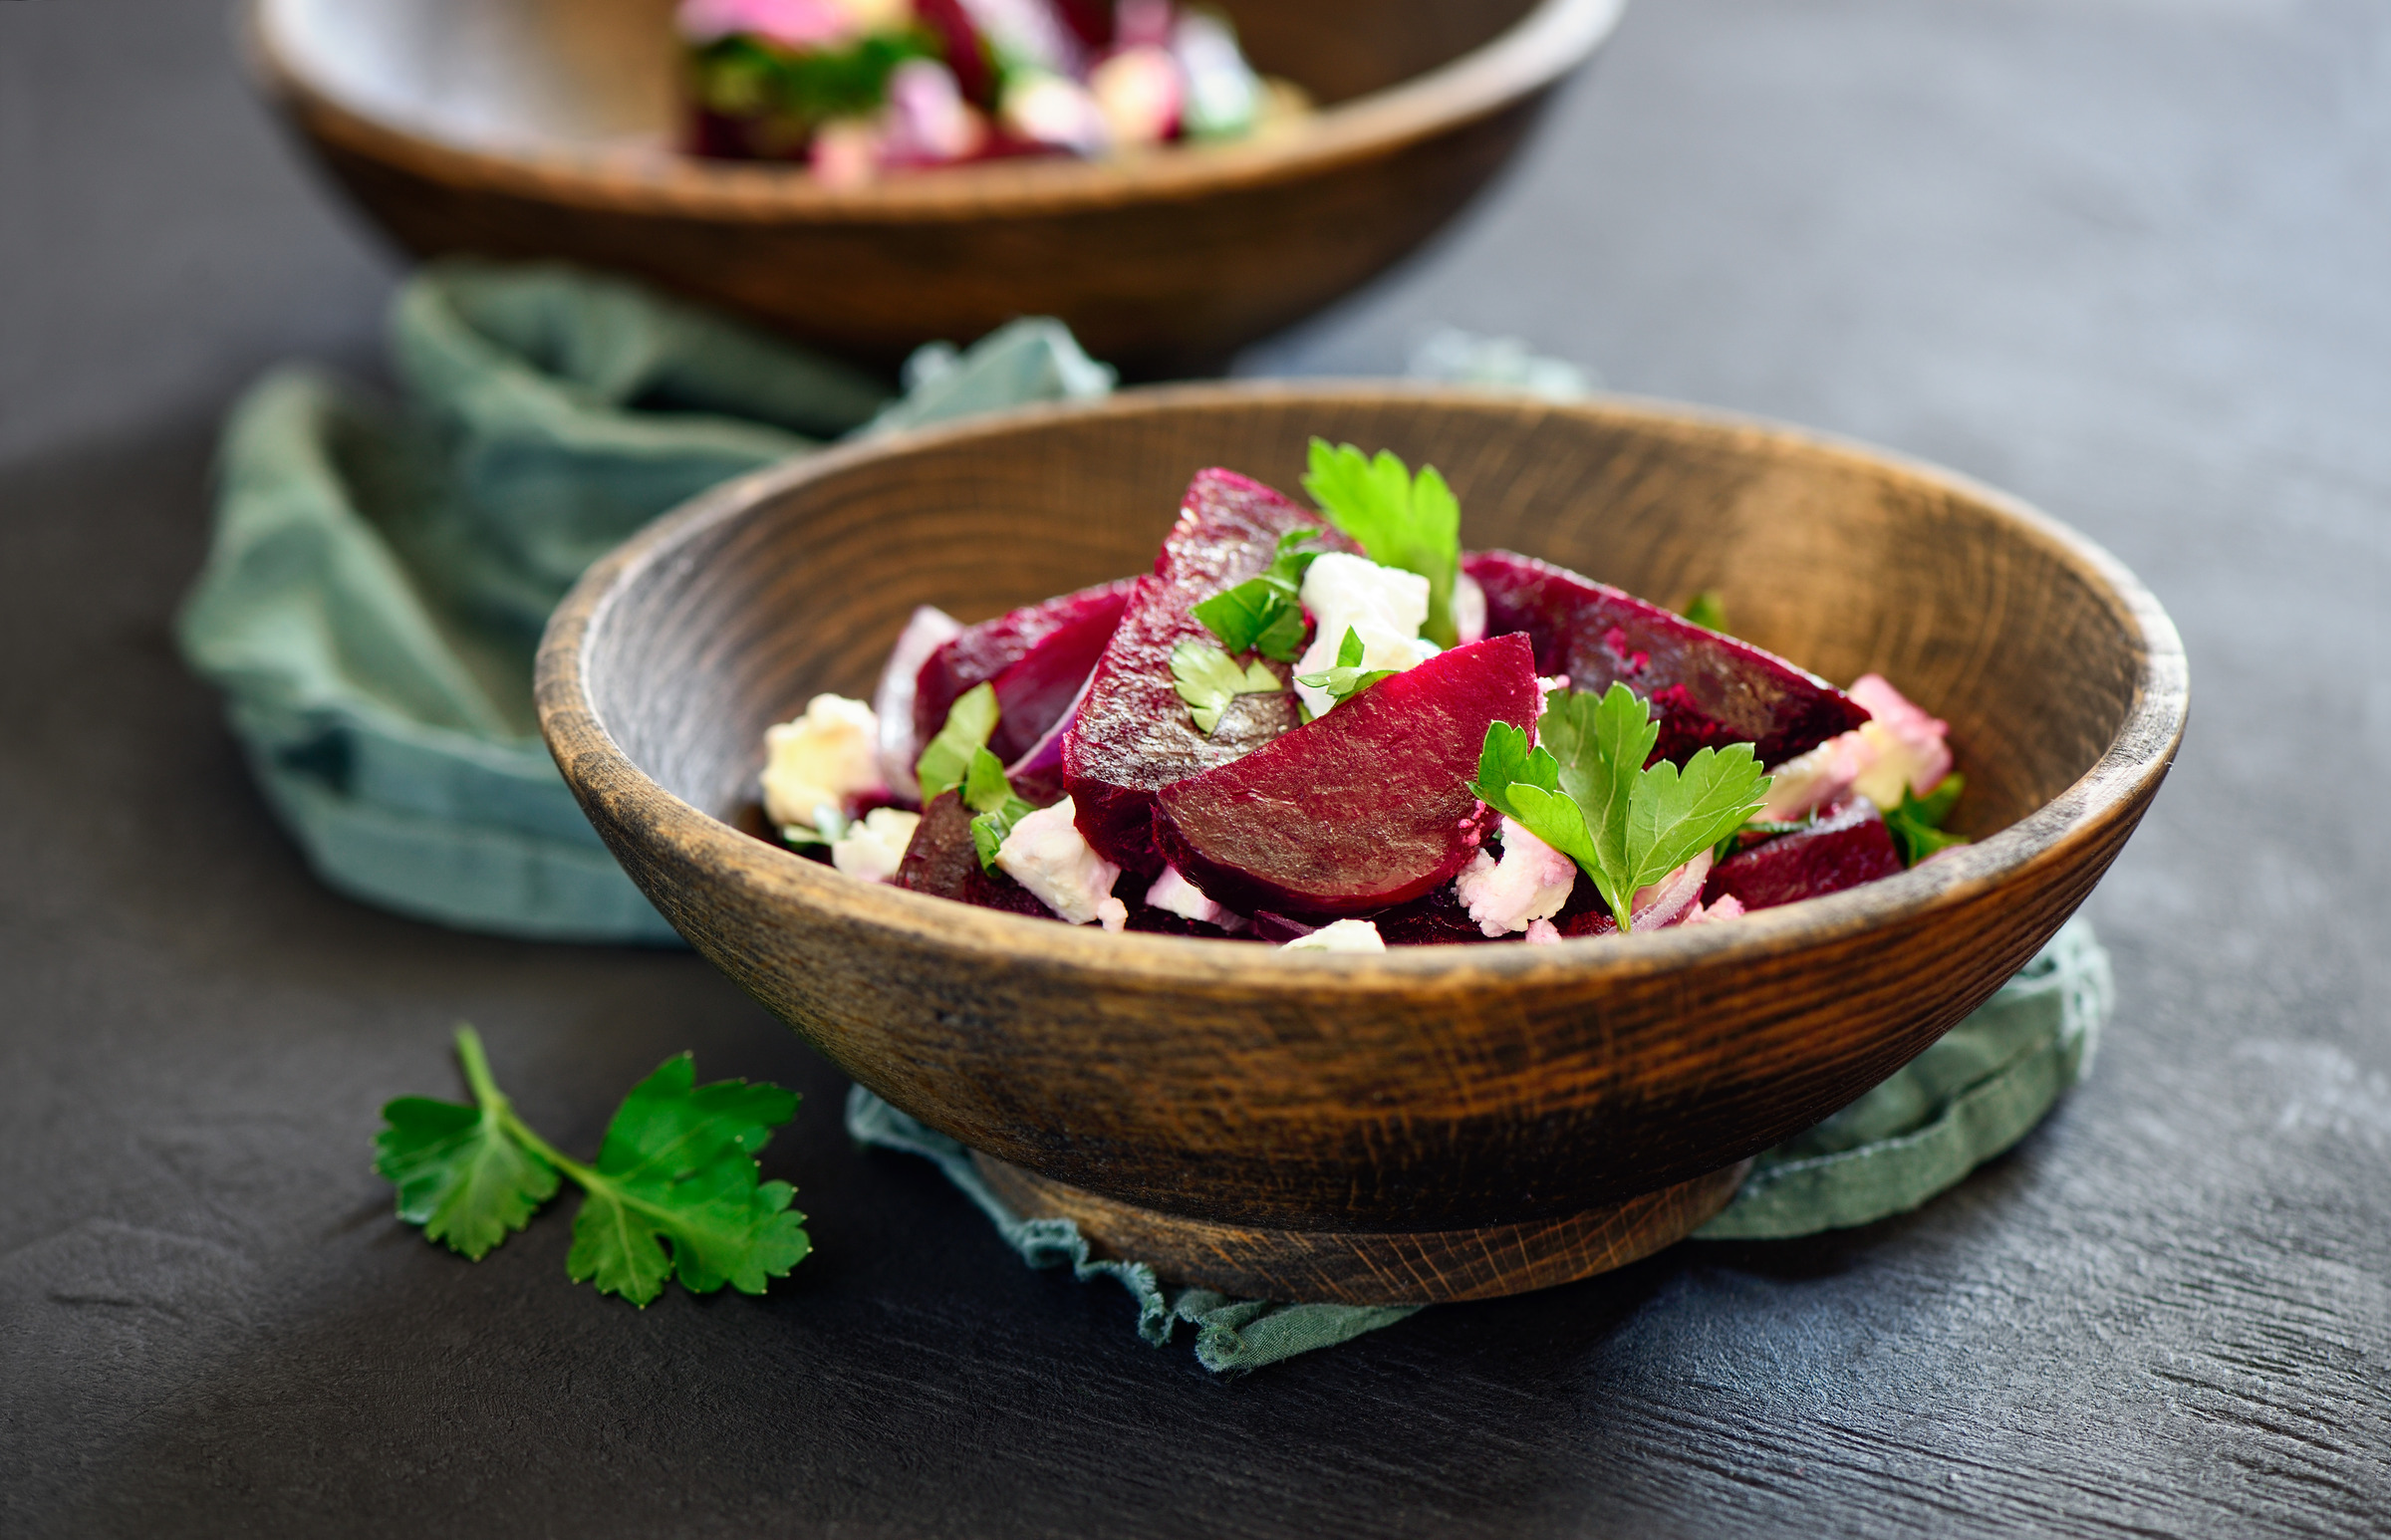 Beetroot and feta salad on a dark wooden table